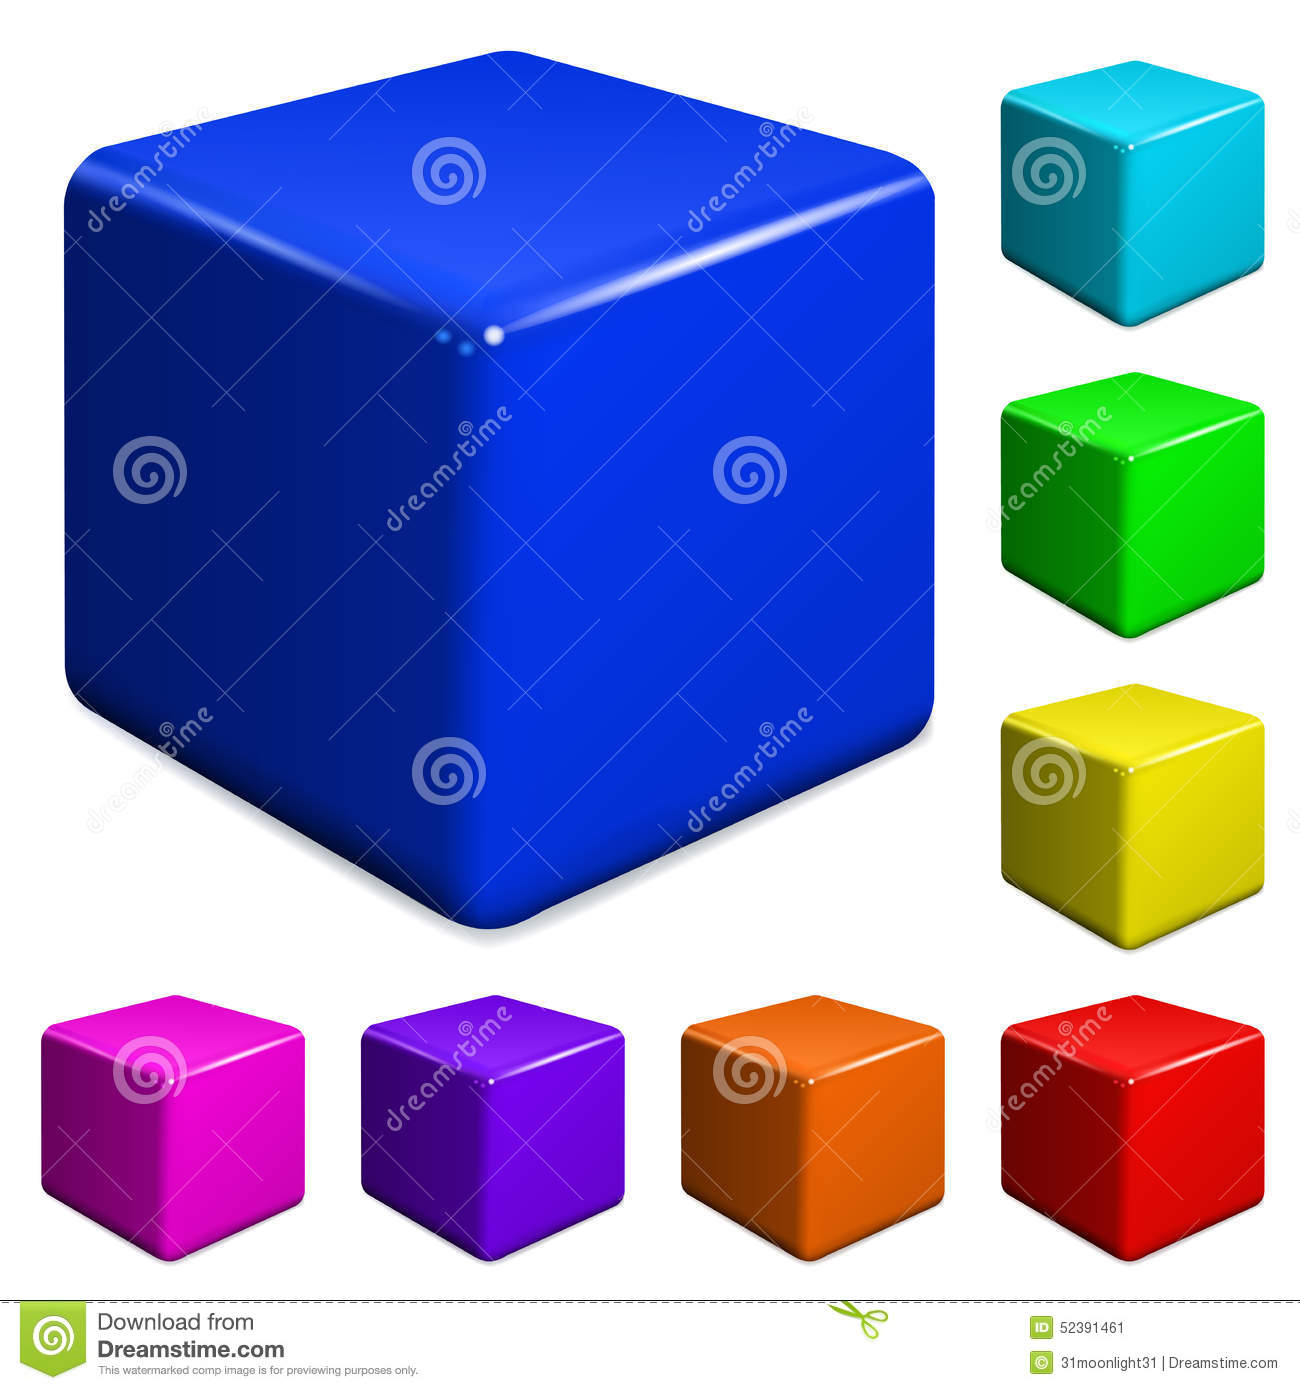 Plastic Cubes Stock Vector - Image: 52391461